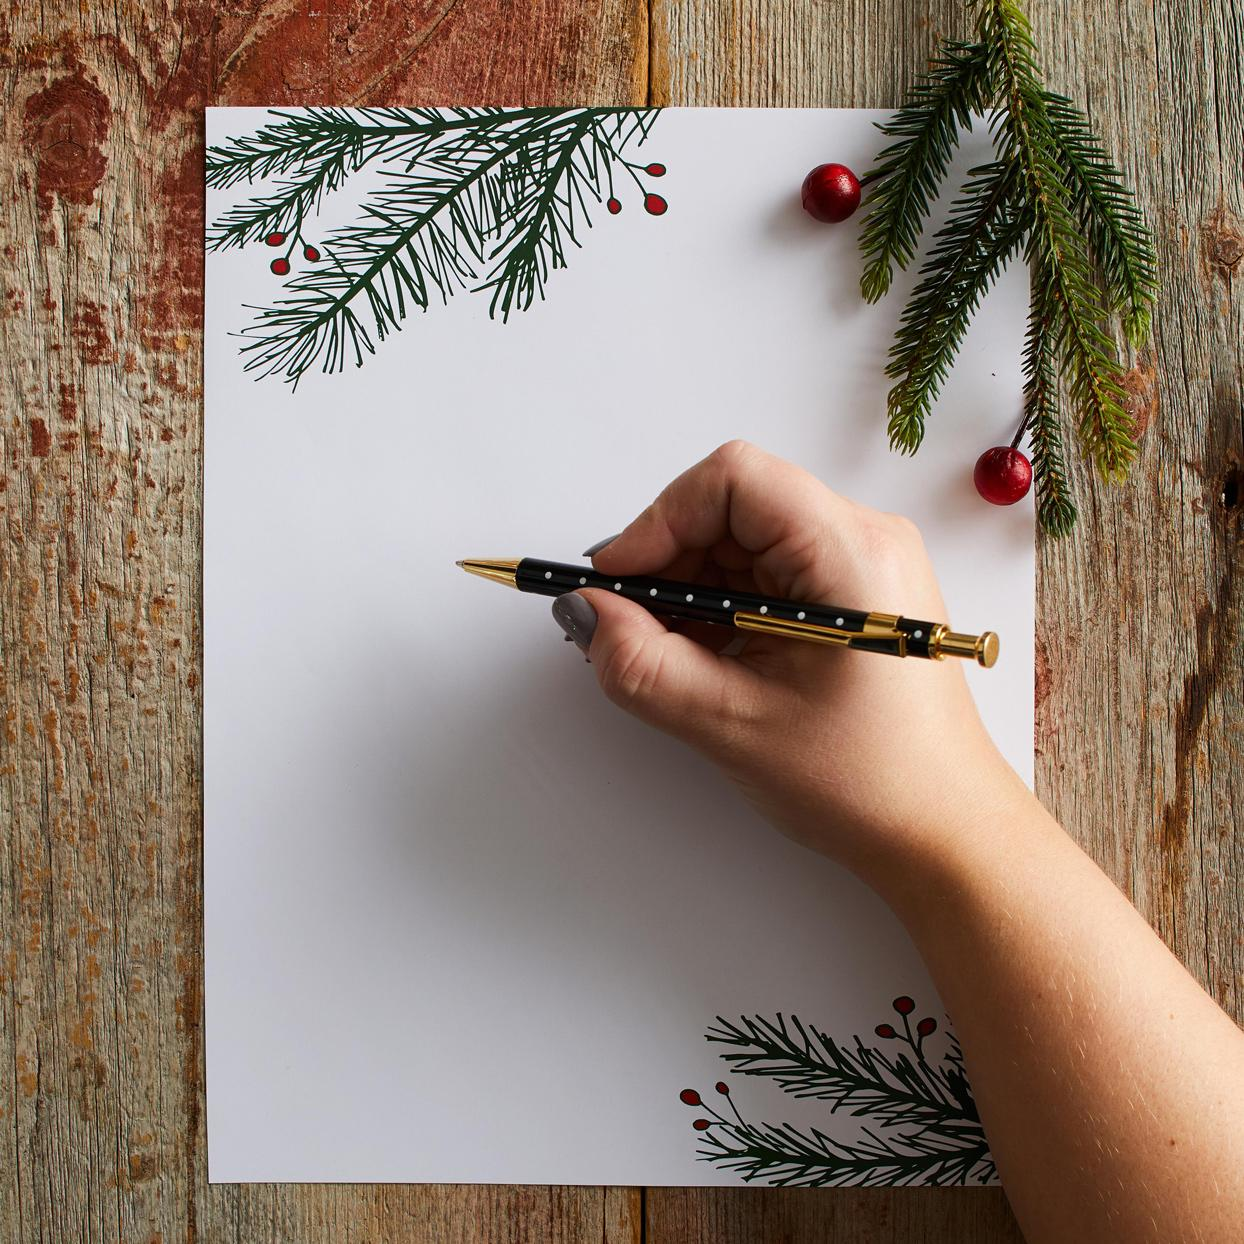 30 Free Christmas Letter Templates to Help You Send Holiday Cheer